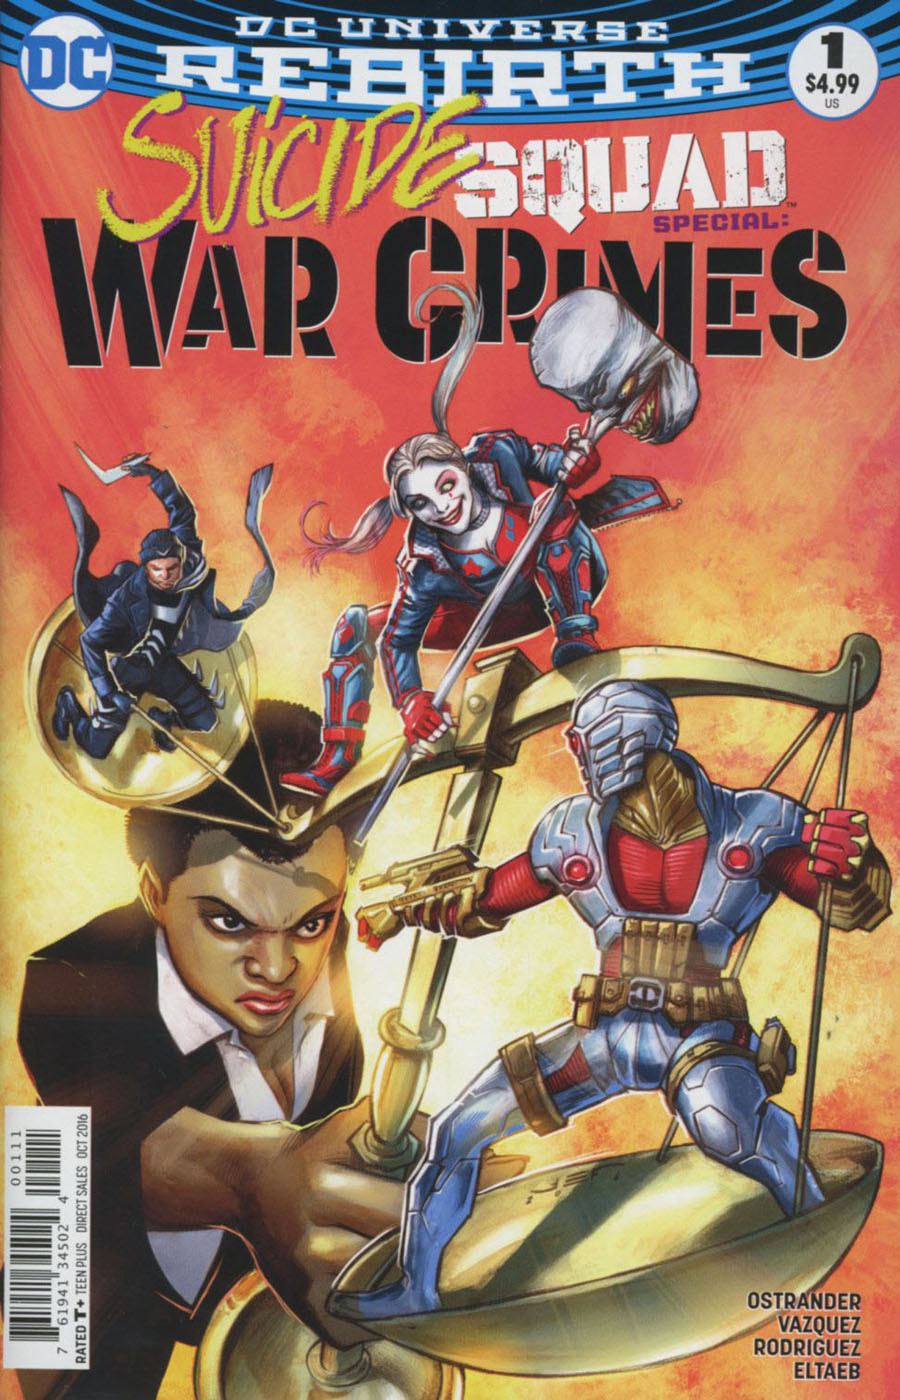 Suicide Squad War Crimes Special #1